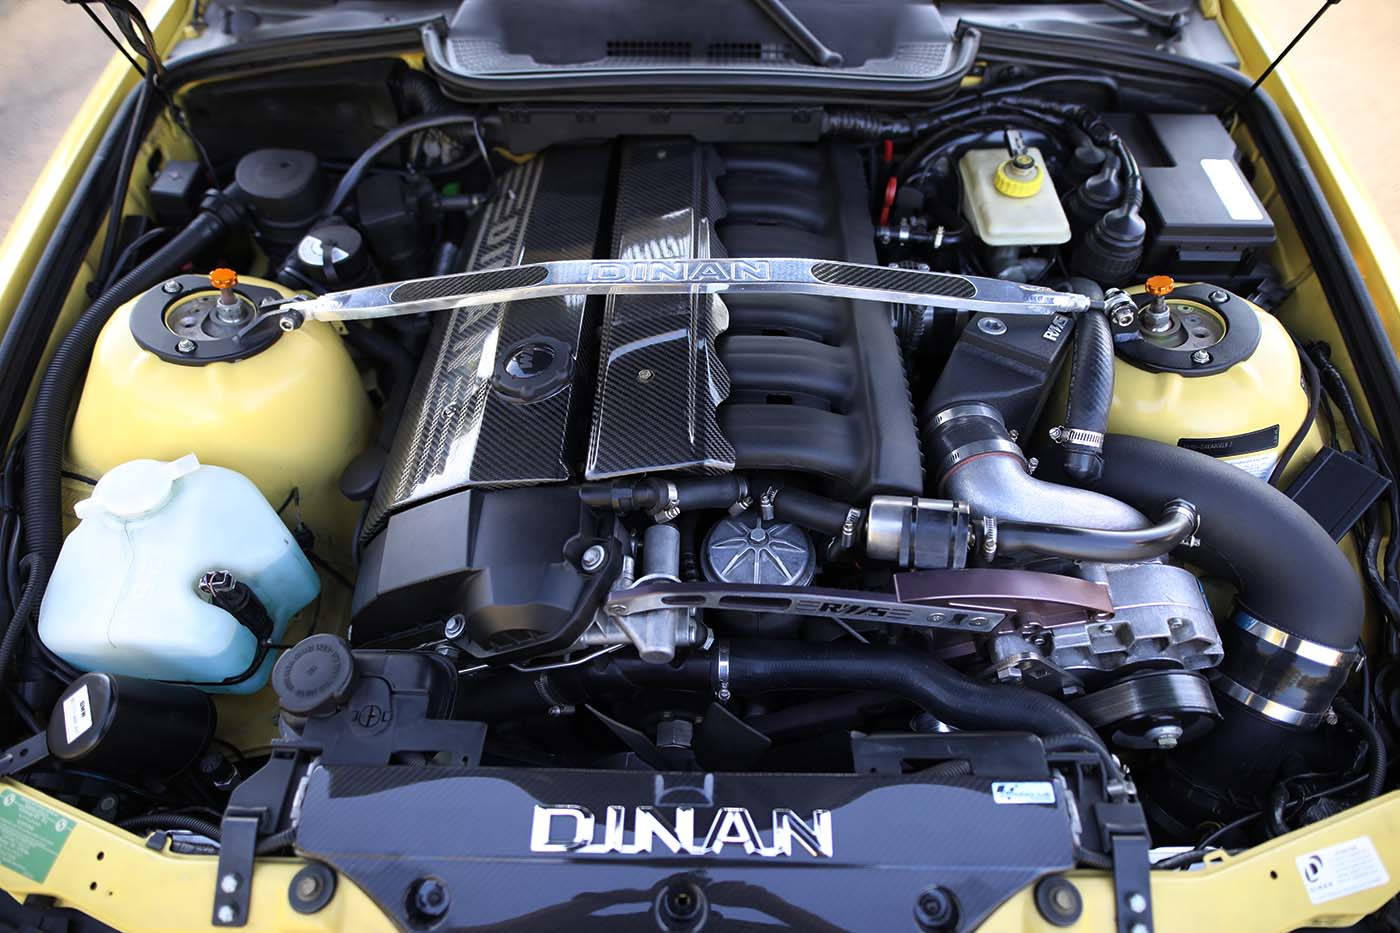 Dinani S52 supercharger RMS bracket